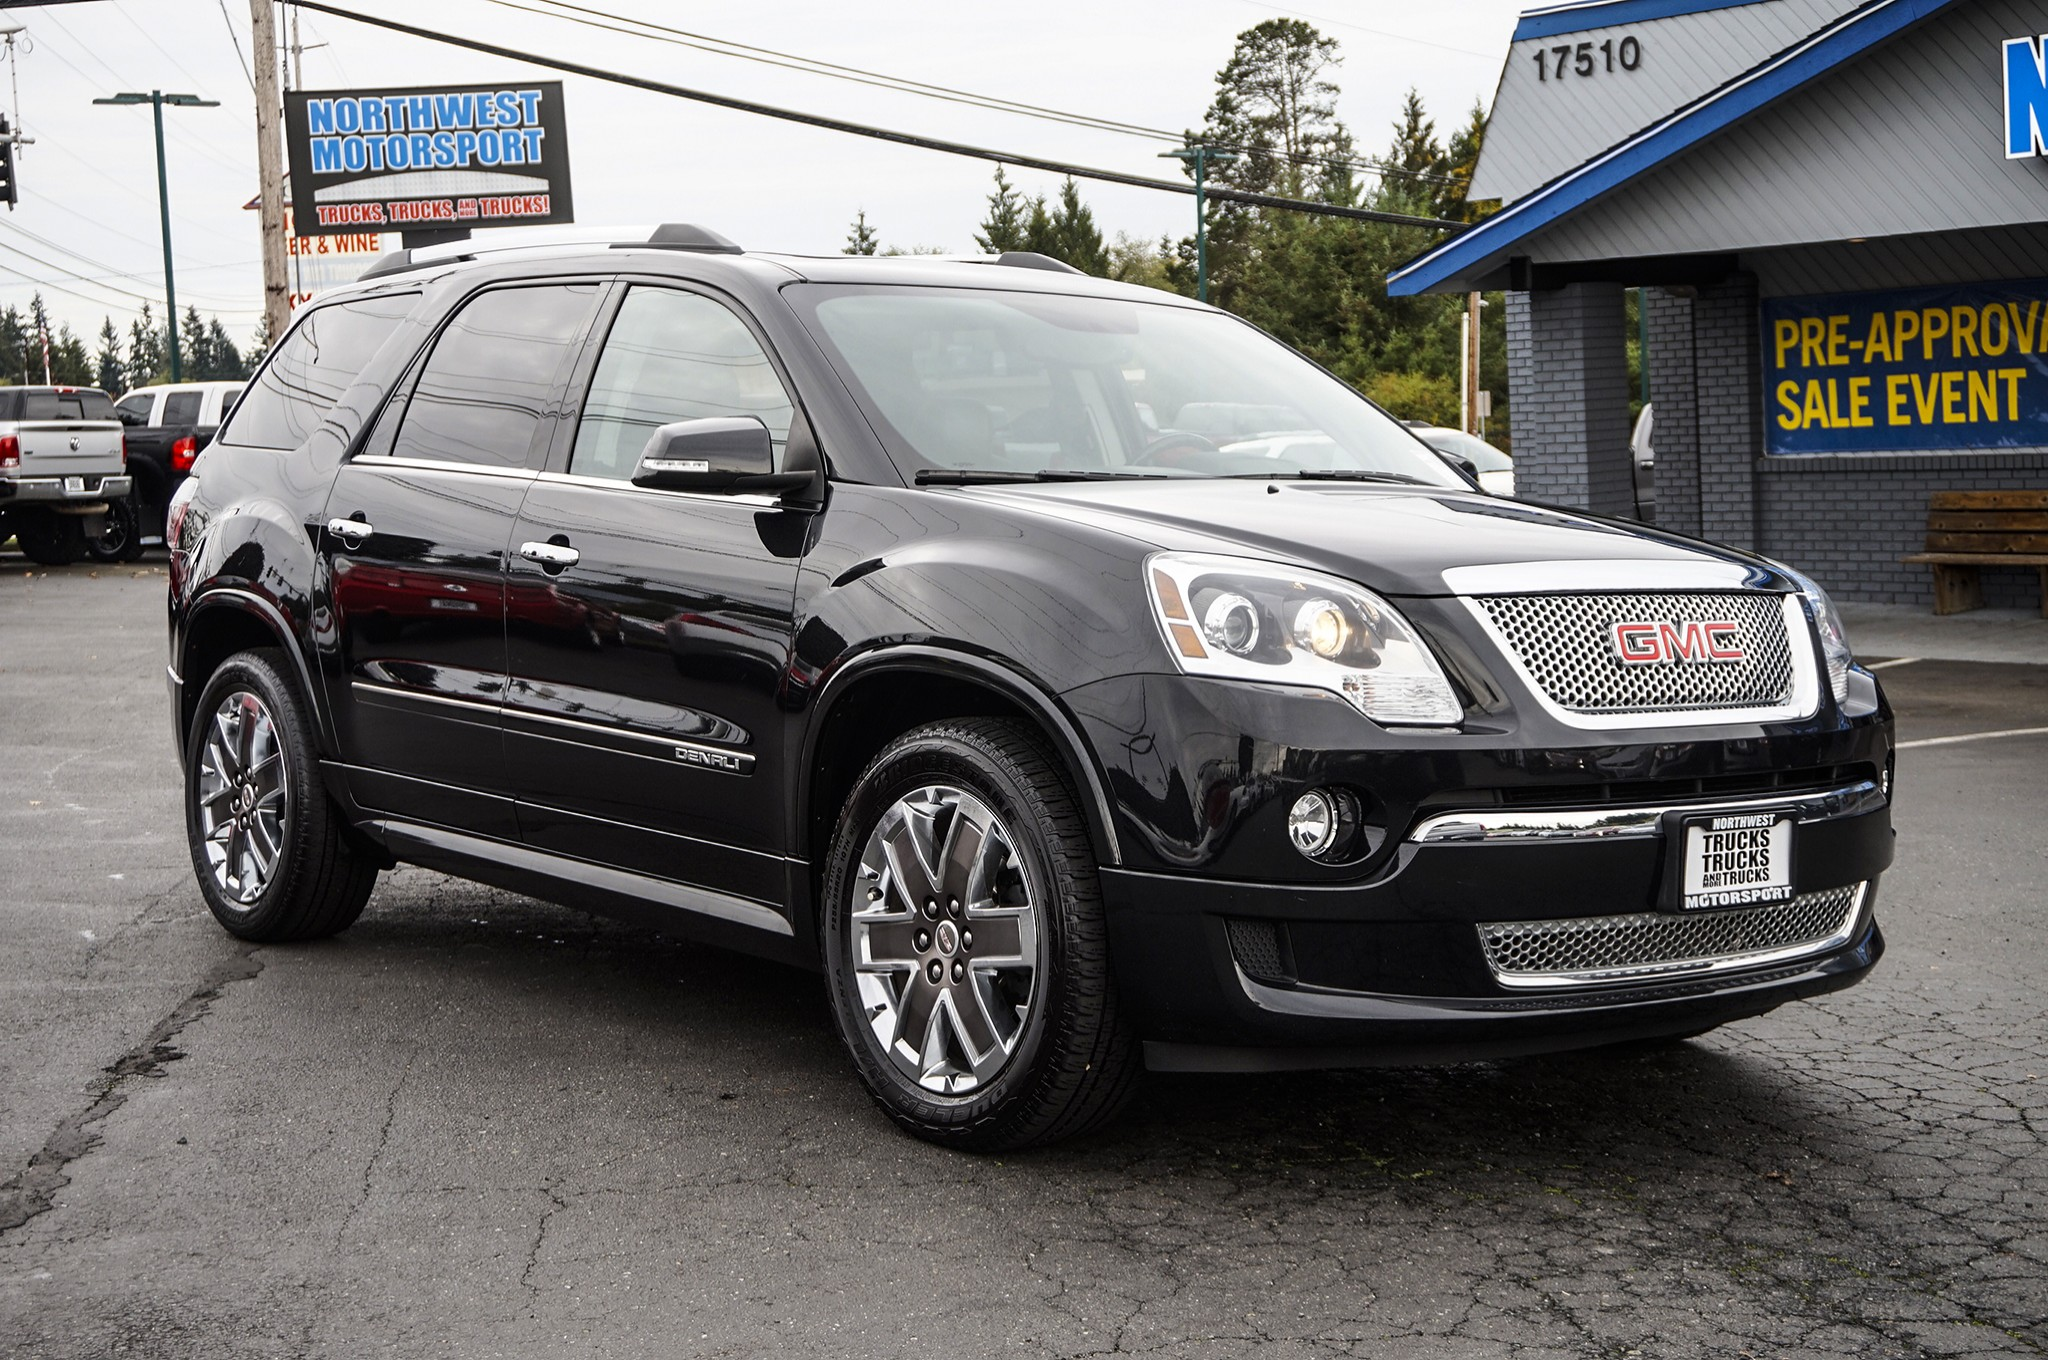 used 2012 gmc acadia denali awd suv for sale 35824. Black Bedroom Furniture Sets. Home Design Ideas